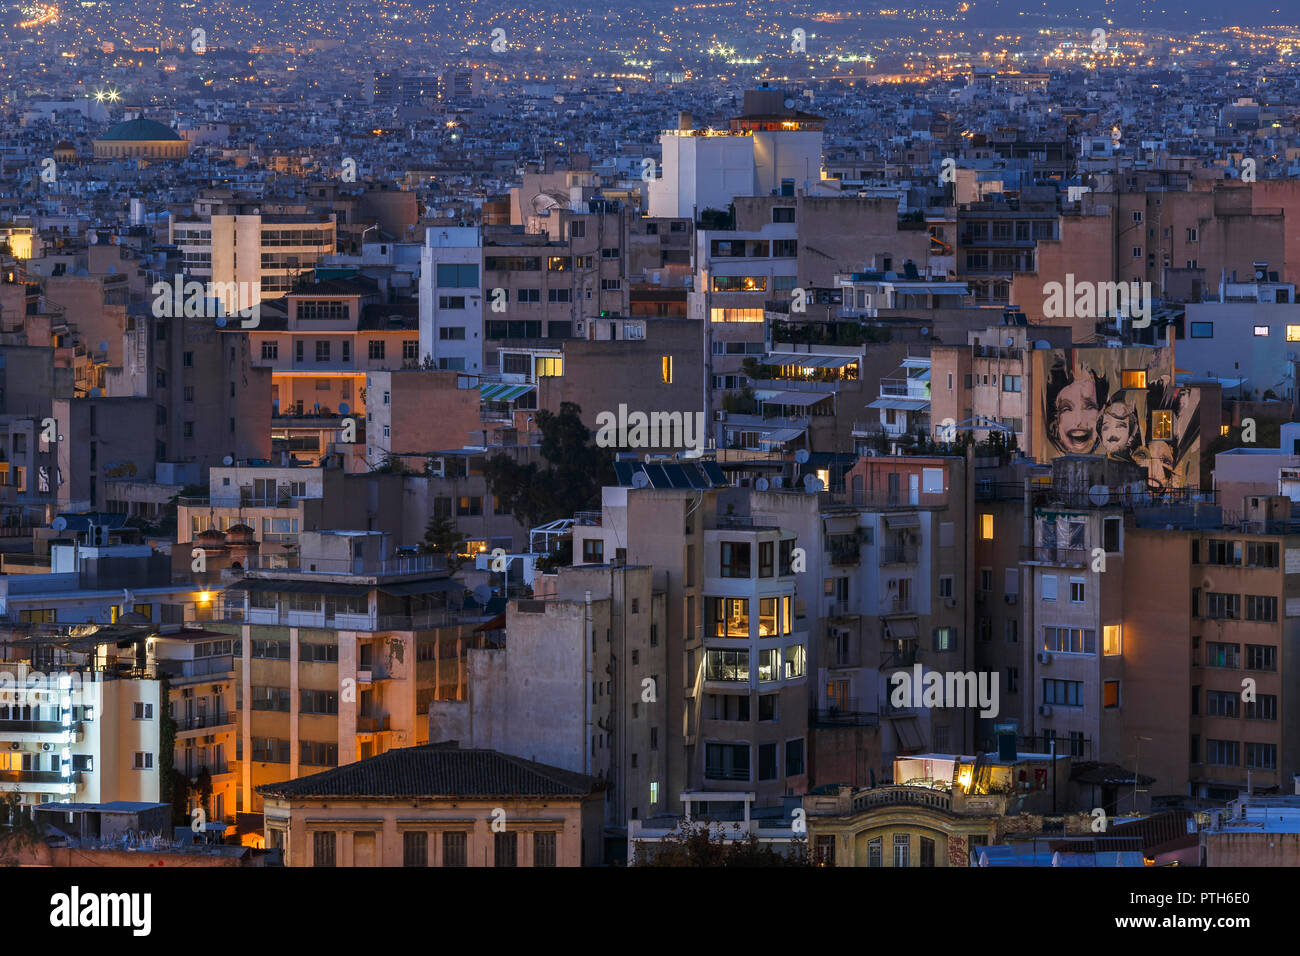 Athens, Greece - October 07, 2018: Psirri neighbourhood in central Athens as seen from the Areopagus hill, Greece. - Stock Image